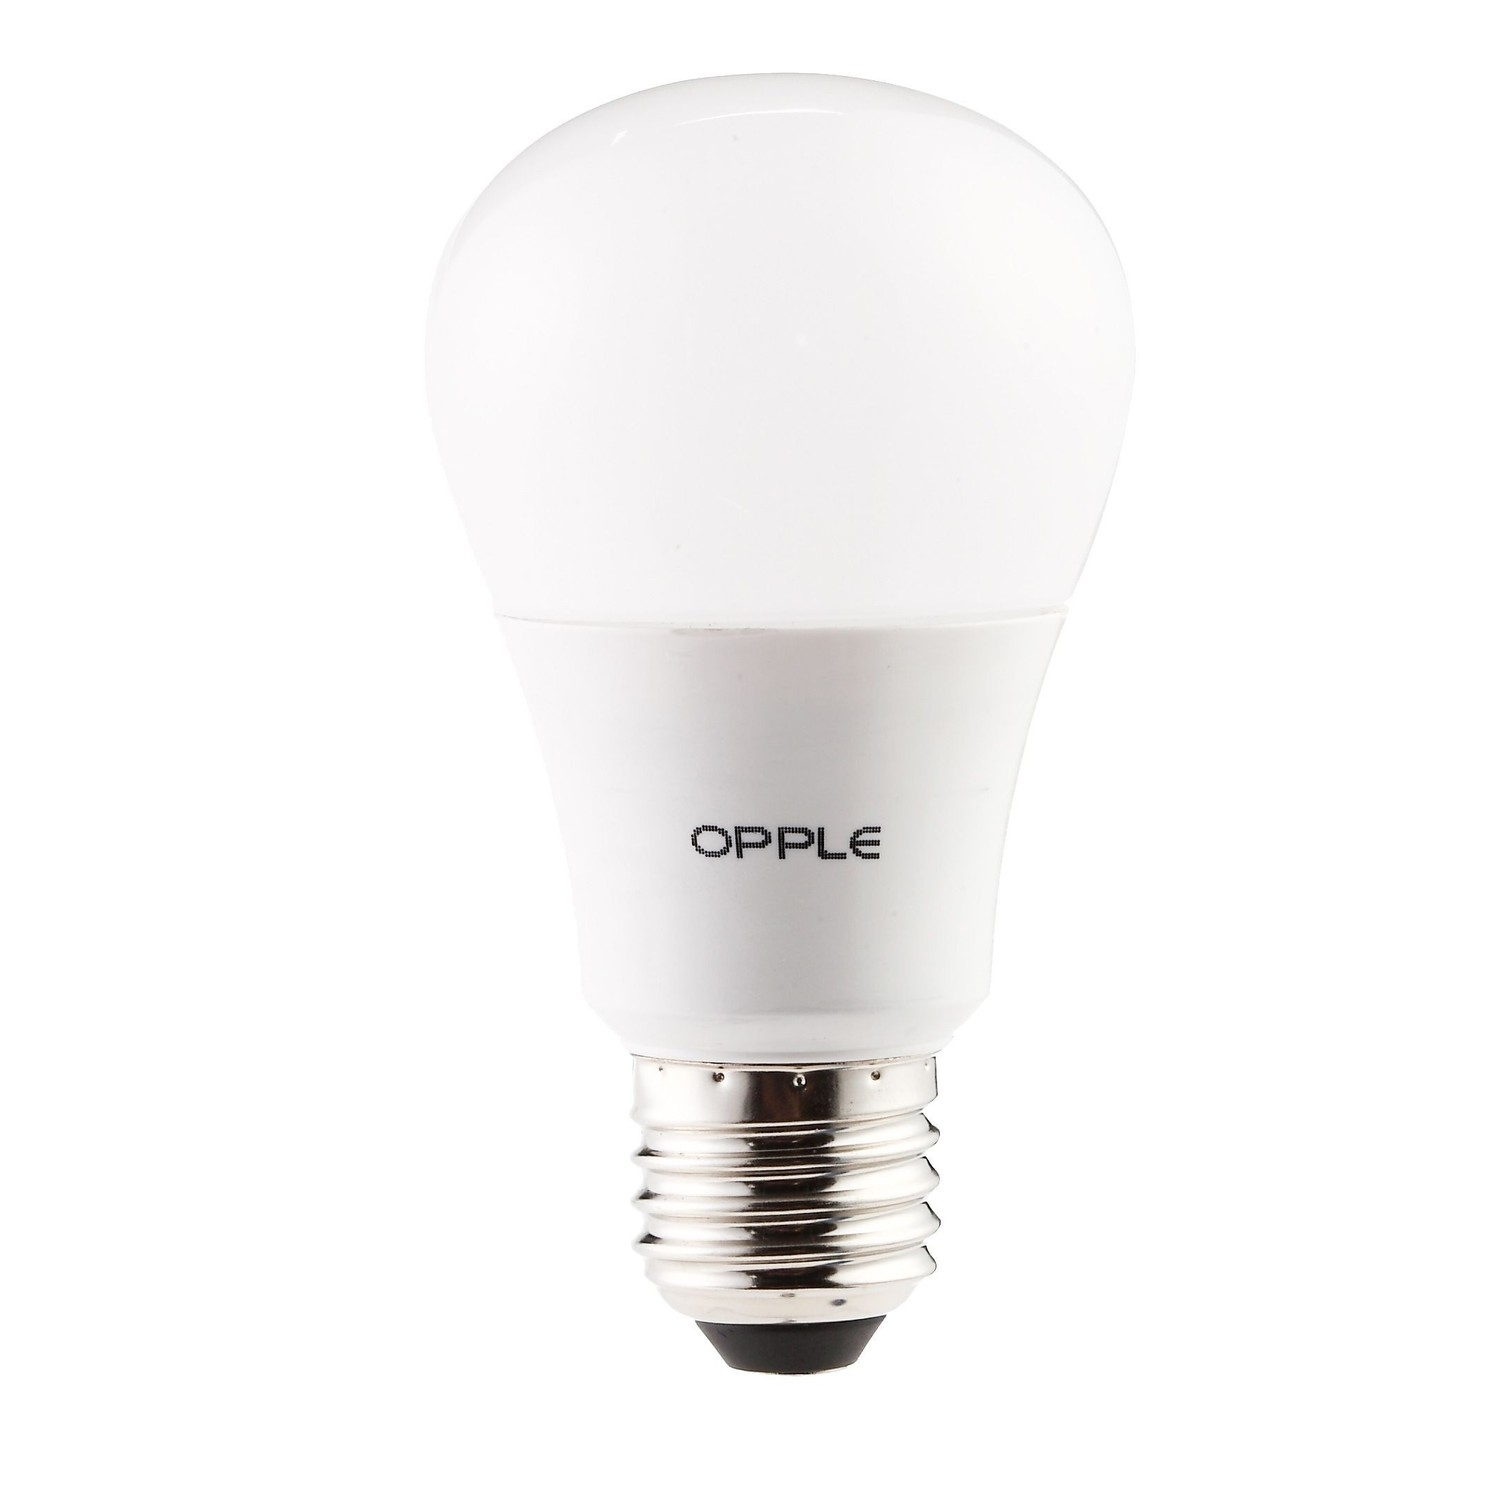 LED Peerlamp Opple E27 5,5W Warm Wit opaal dimbaar